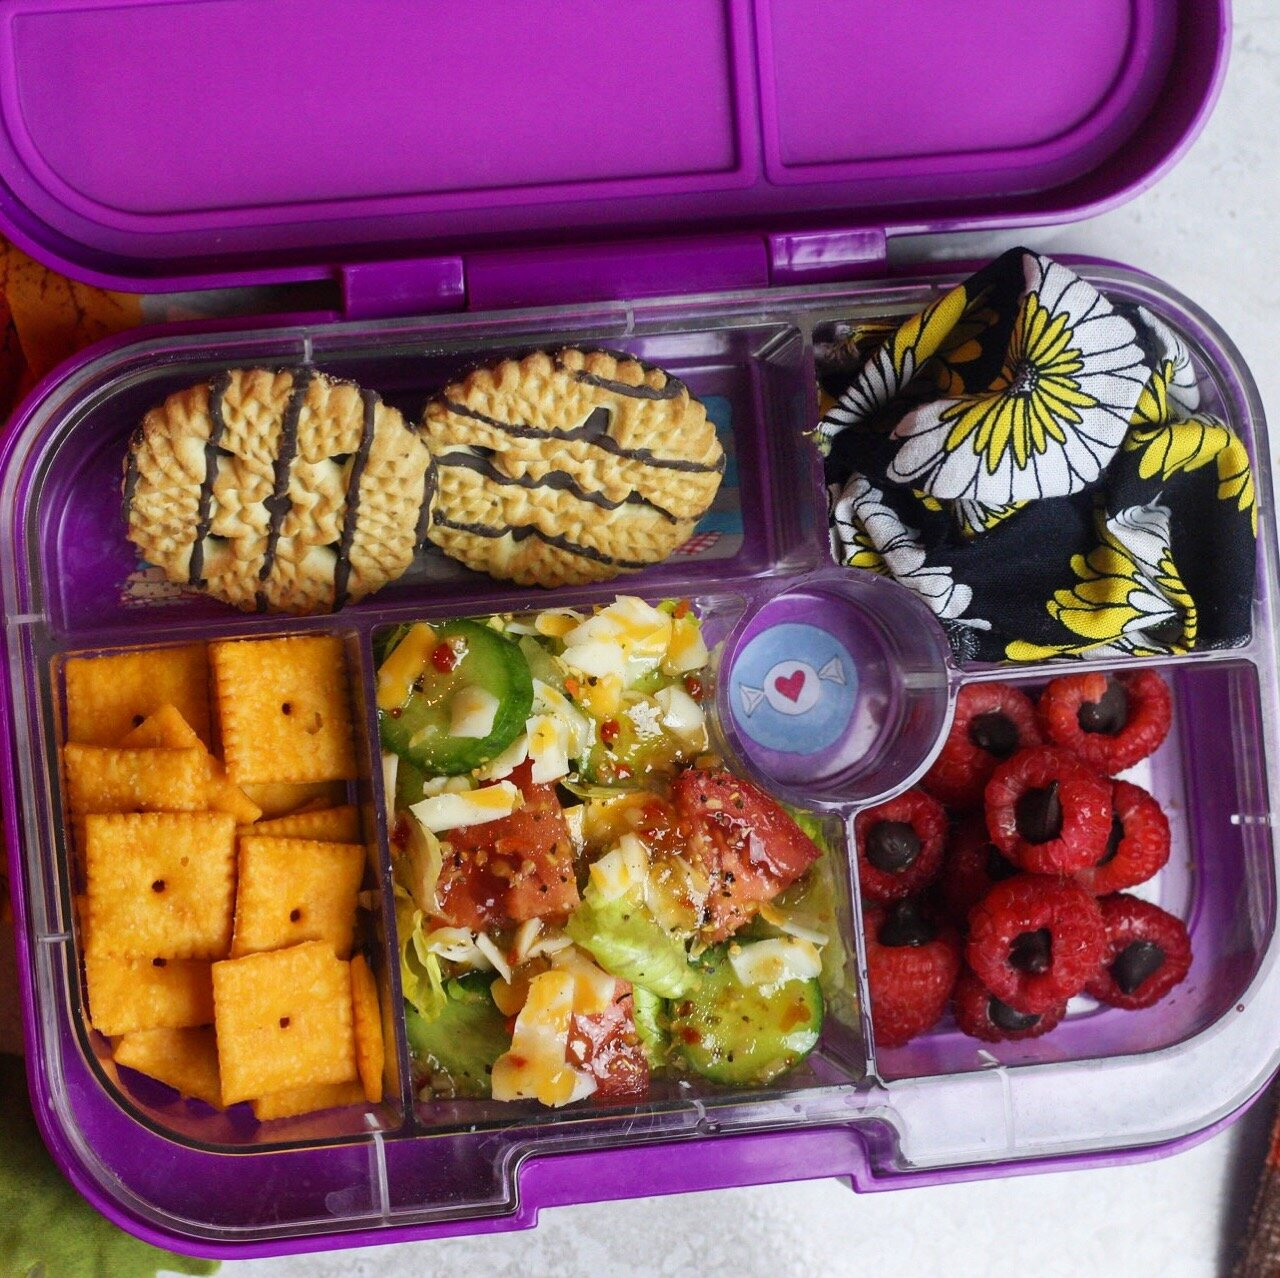 Salad for lunch is one of the most refreshing things ever! - Salad (crunchy romaine,roma tomatoes,mini cucumbers,colby jack cheese,ms dash,italian dressing), cheez its,raspberries with chocolate chips,and cookies!